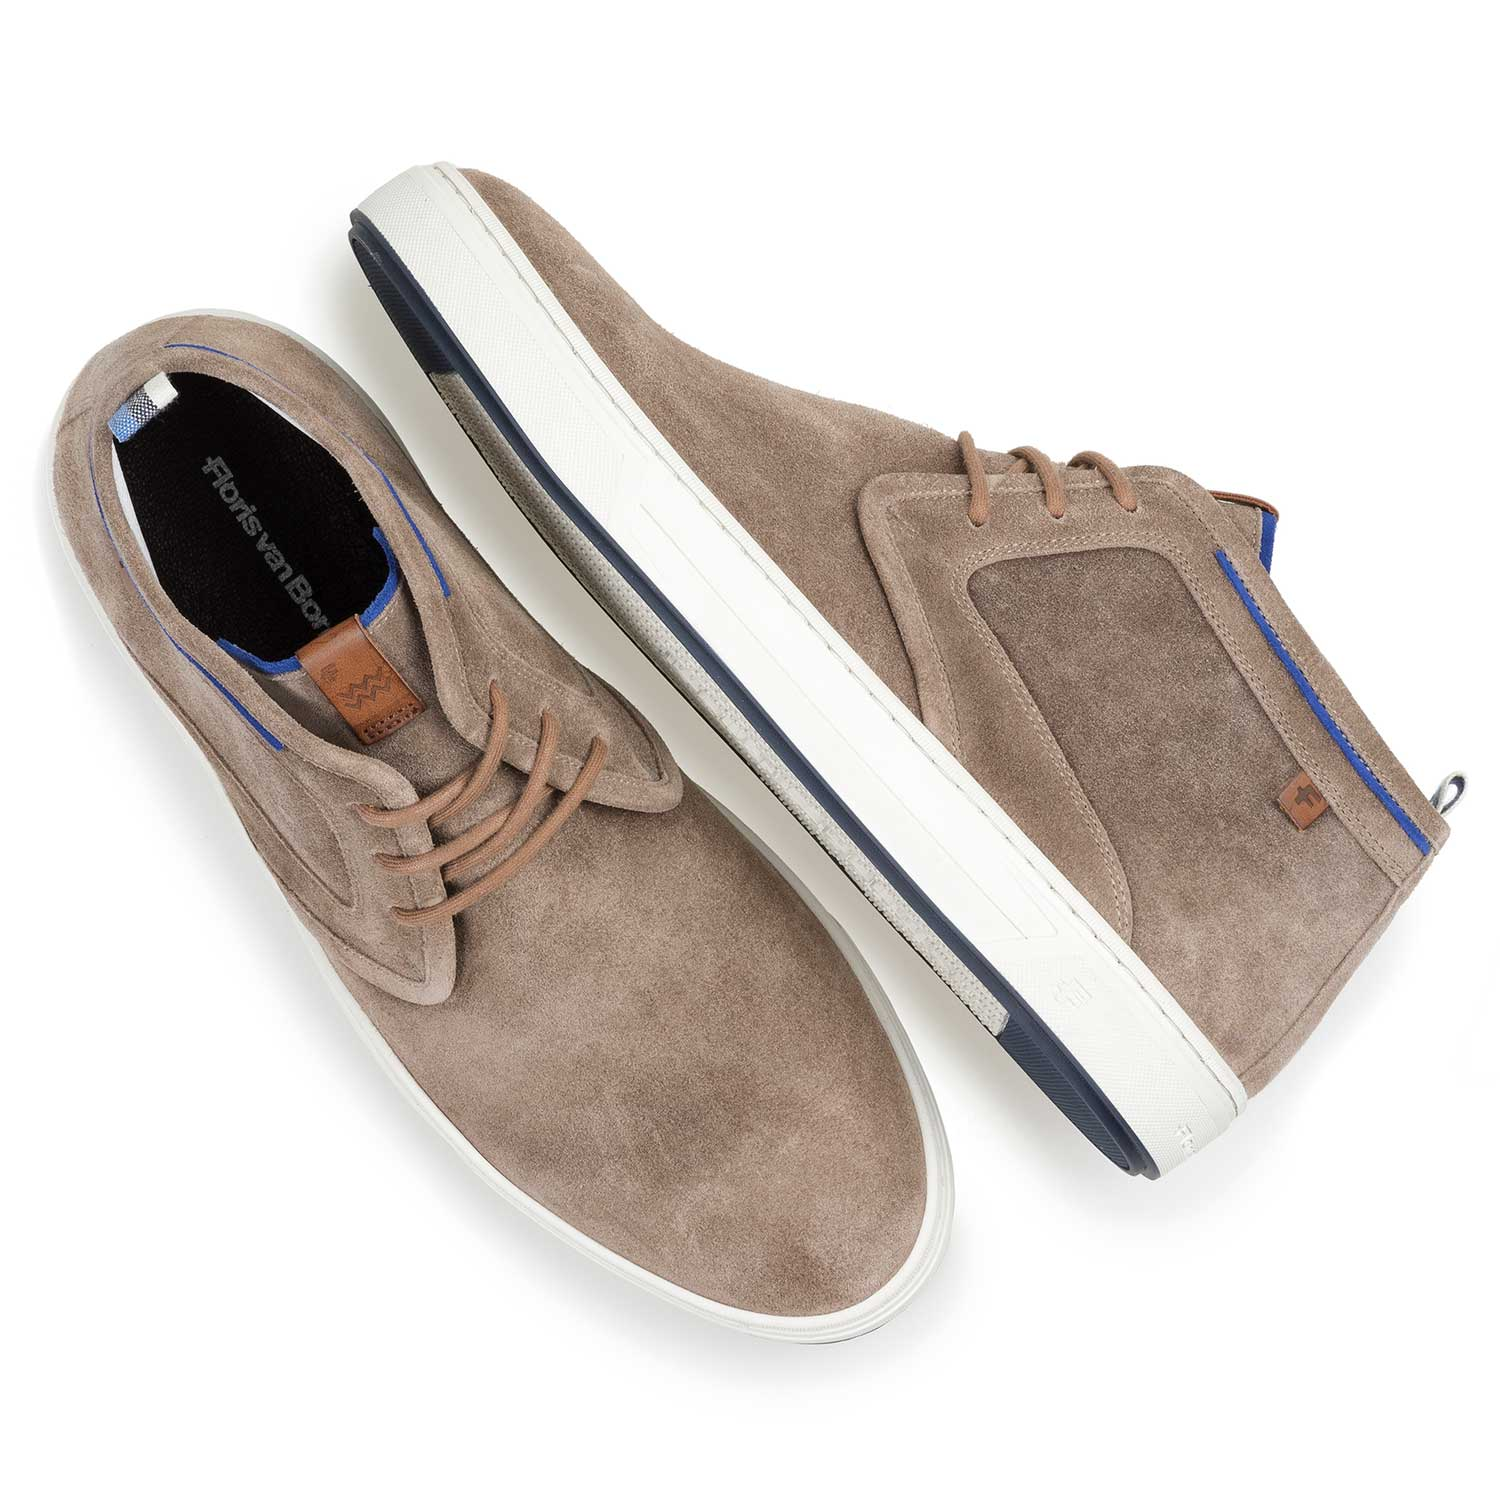 10466/01 - Taupe-coloured washed suede leather lace shoe